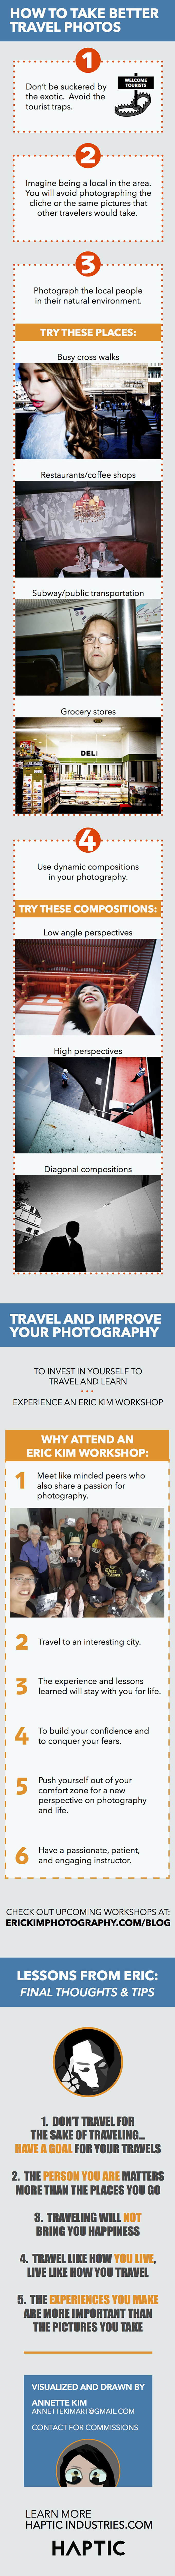 2-TRAVEL-PHOTOGRAPHY-TIPS-BY-ERIC-KIM-ANNETTE-KIM-HAPTIC-DECEMBER2017